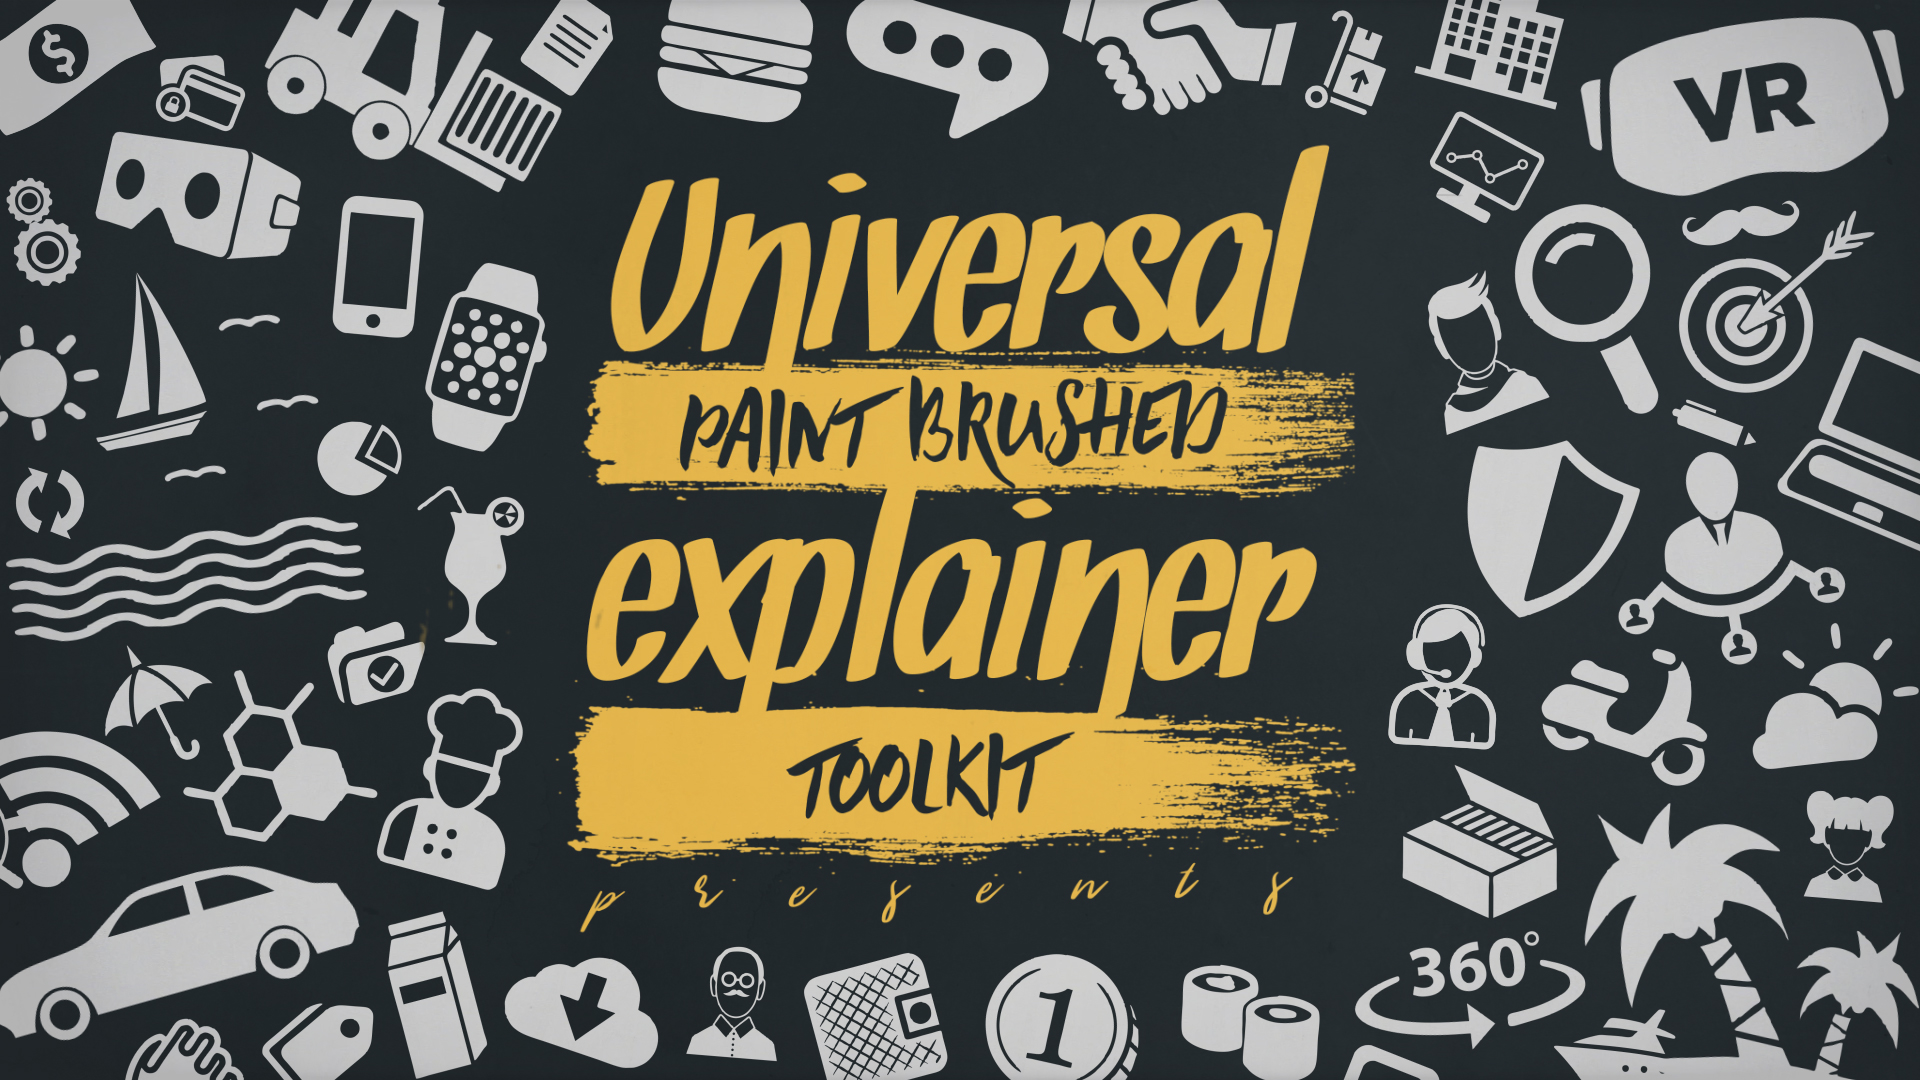 Universal_Paint_Brushed_Explainer_Toolkit_1080p_00115